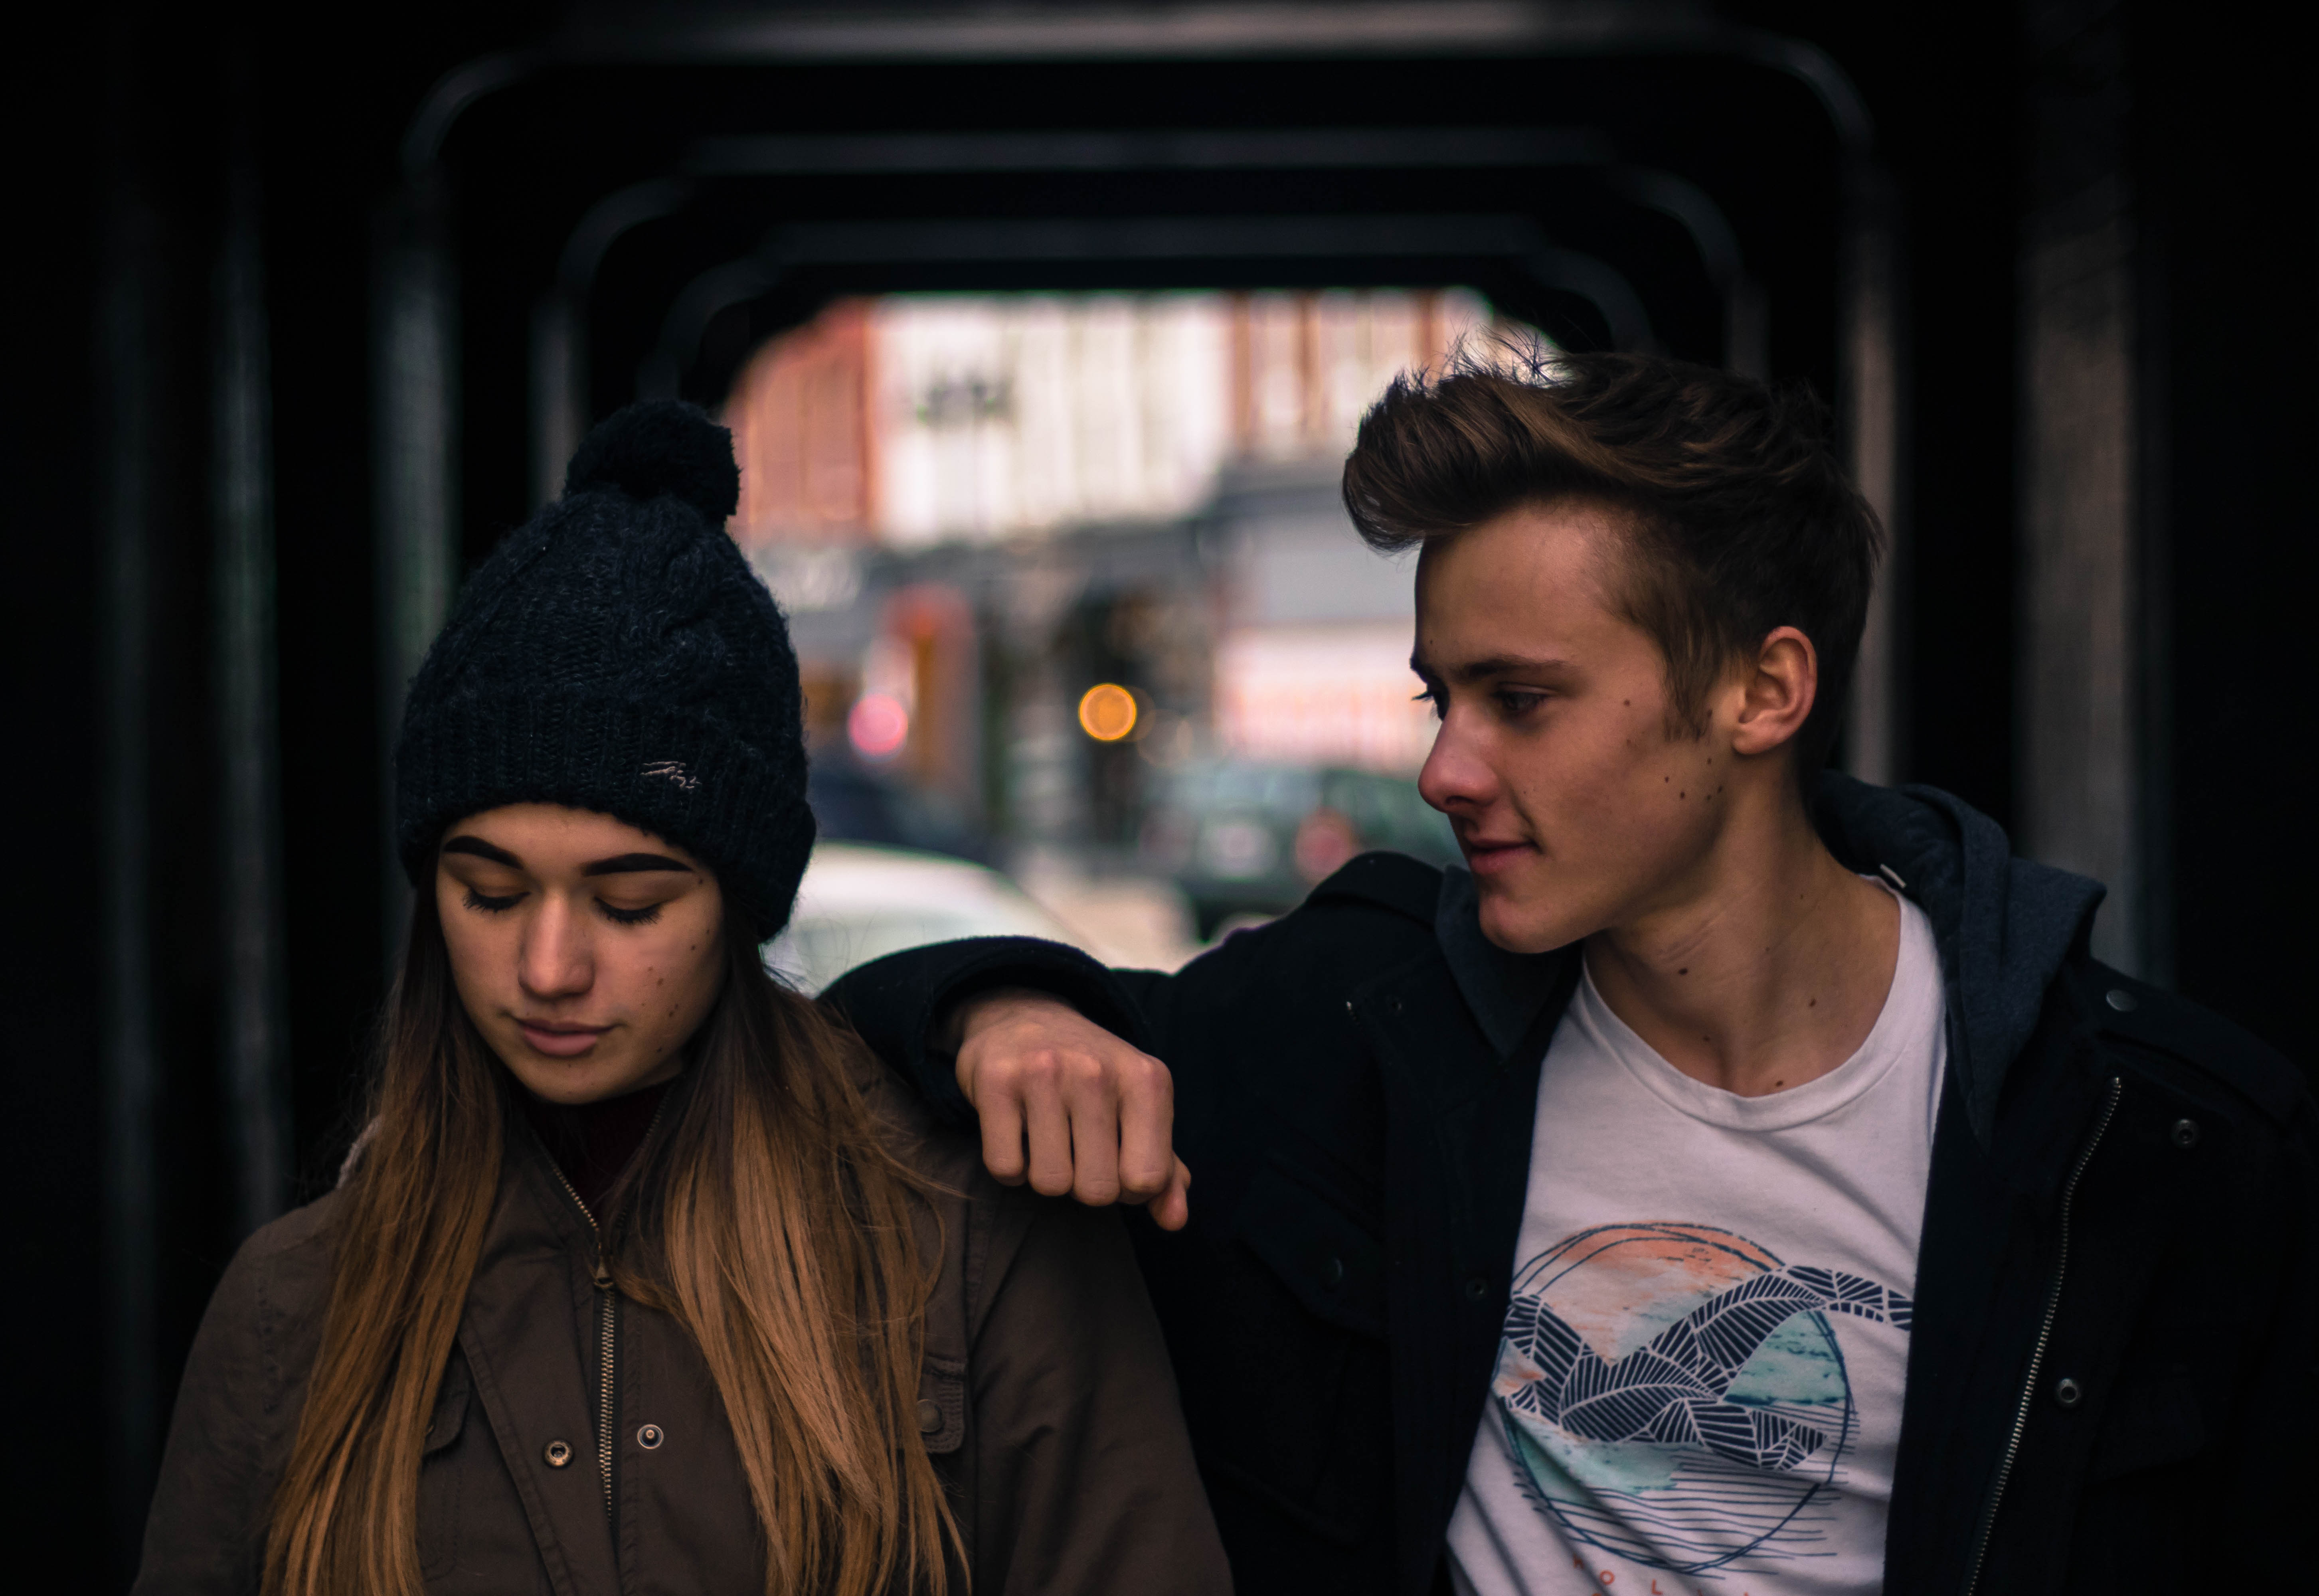 a boy looking at a girl